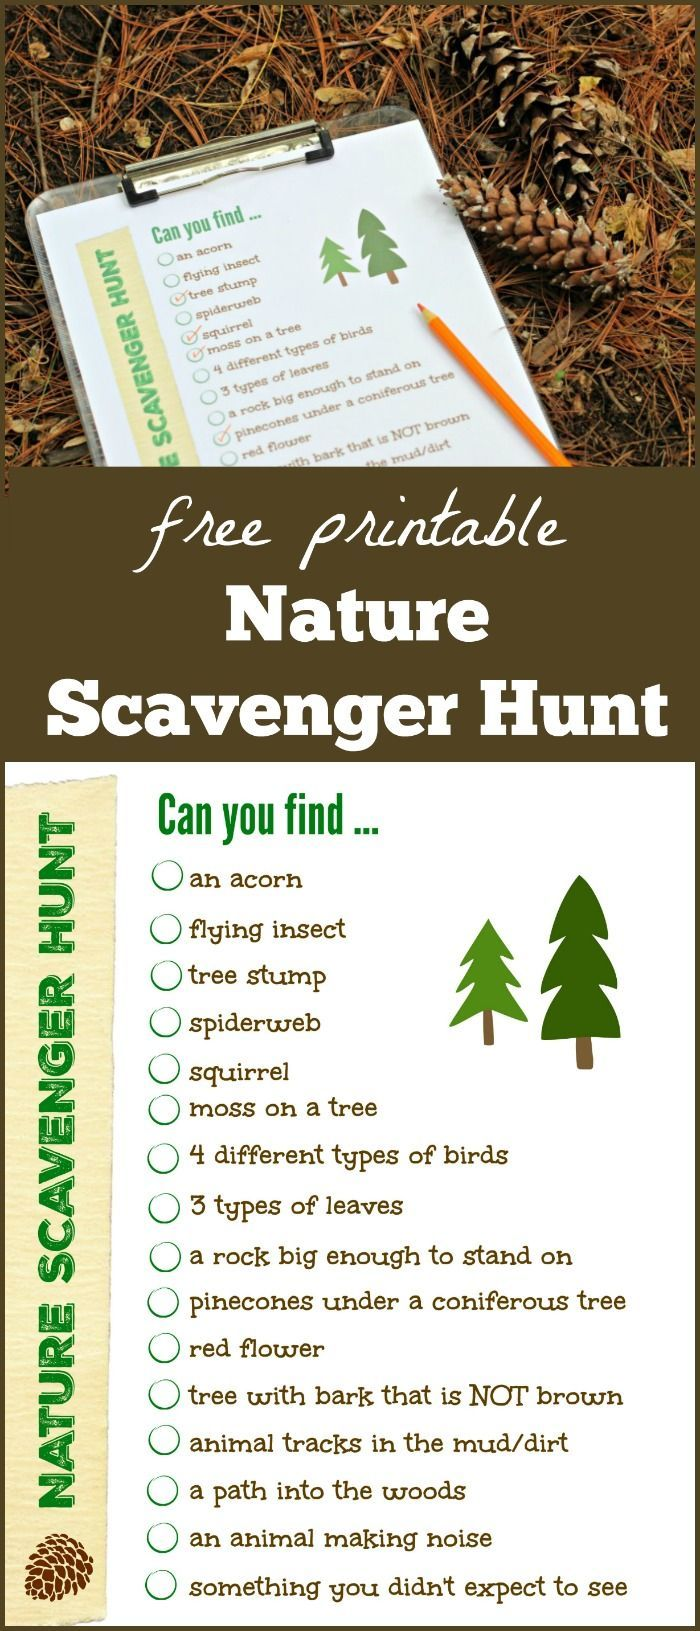 Nature Scavenger Hunt free printable list | outdoor STEM for kids | hiking with kids